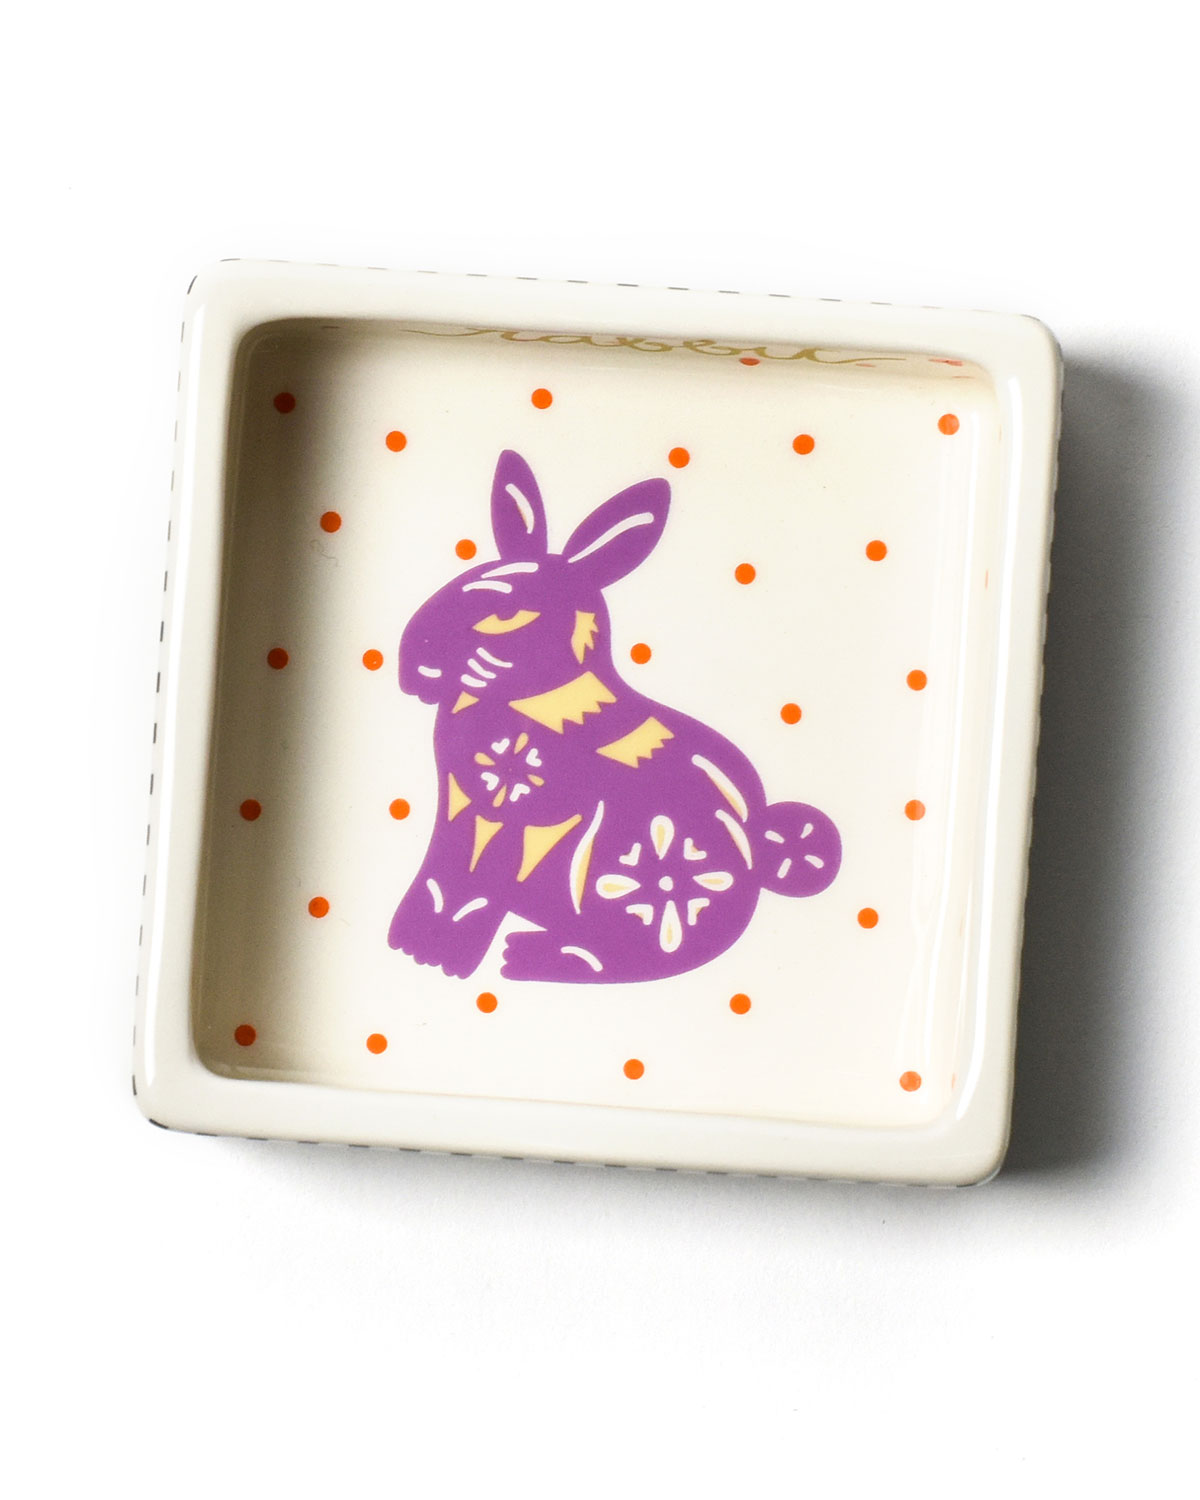 Coton Colors Chinese Zodiac Rabbit Small Square Trinket Bowl